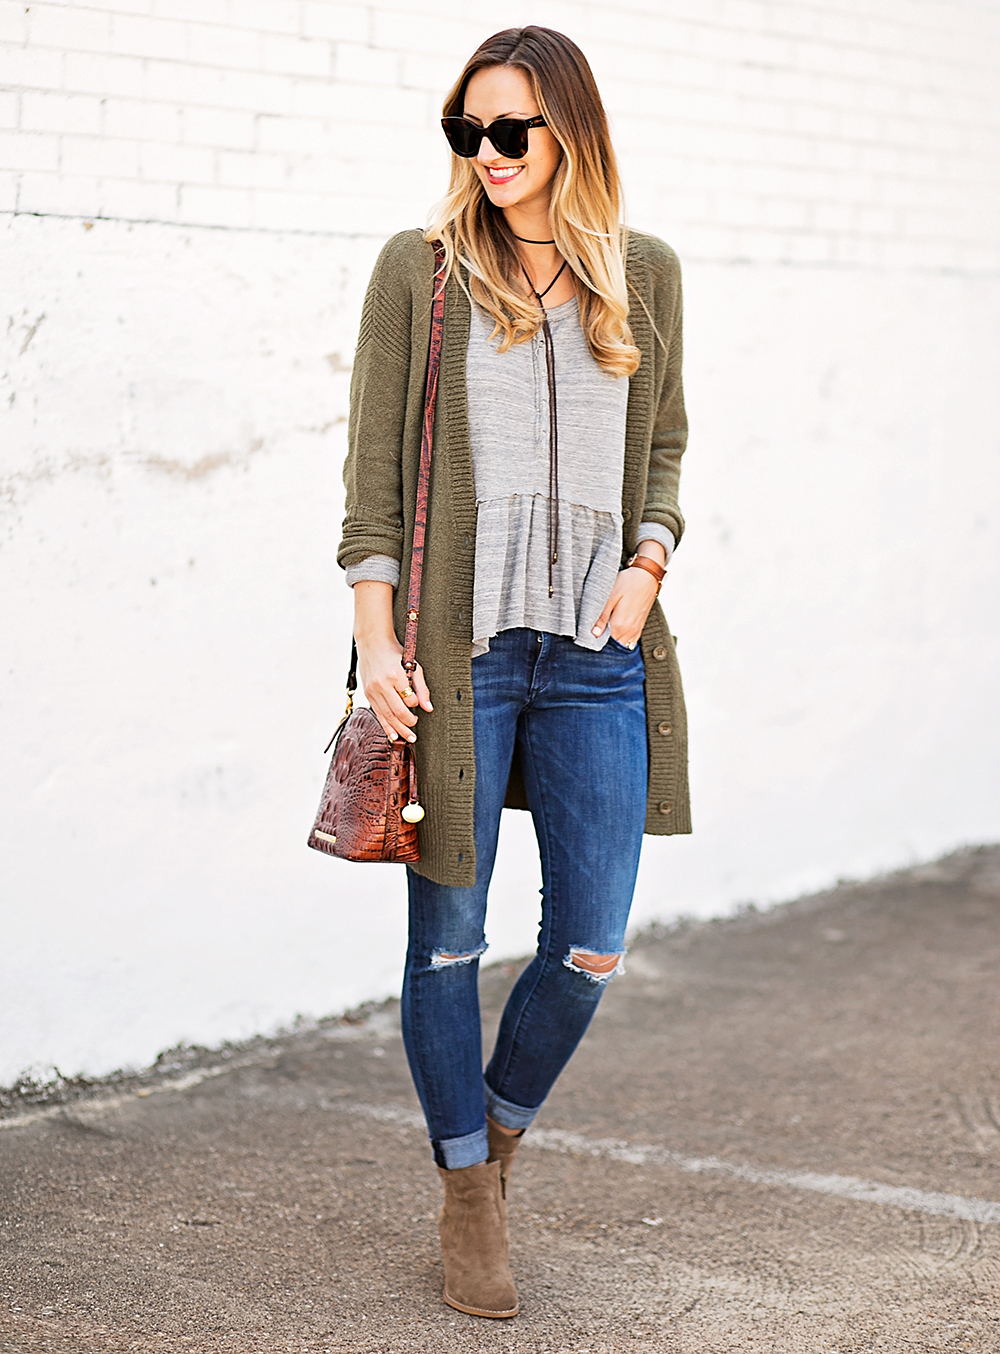 livvyland-blog-olivia-watson-peplum-thermal-tee-shirt-olive-cardigan-boho-outfit-casual-taupe-ankle-booties-fall-outfit-idea-celine-baby-marta-sunglasses-7